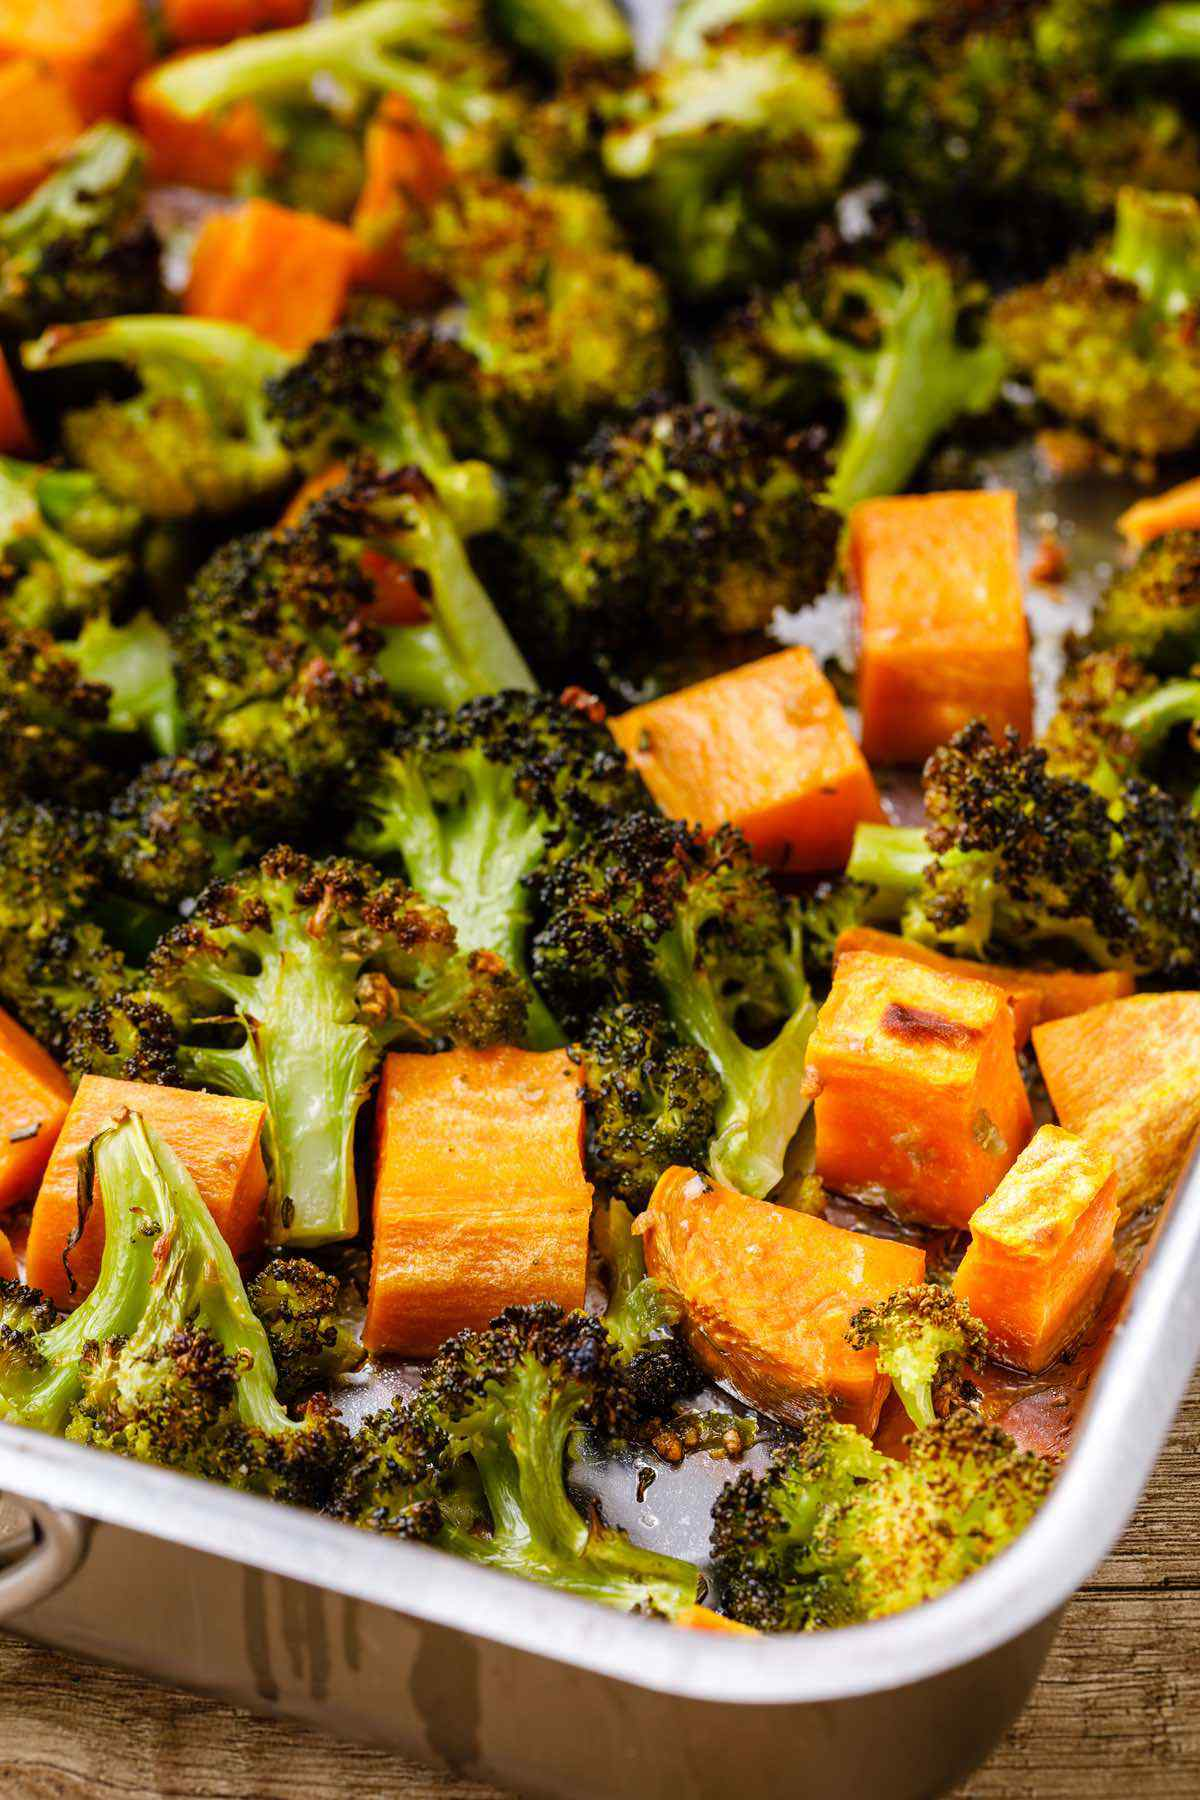 Sheet Pan Roasted Broccoli and Sweet Potatoes